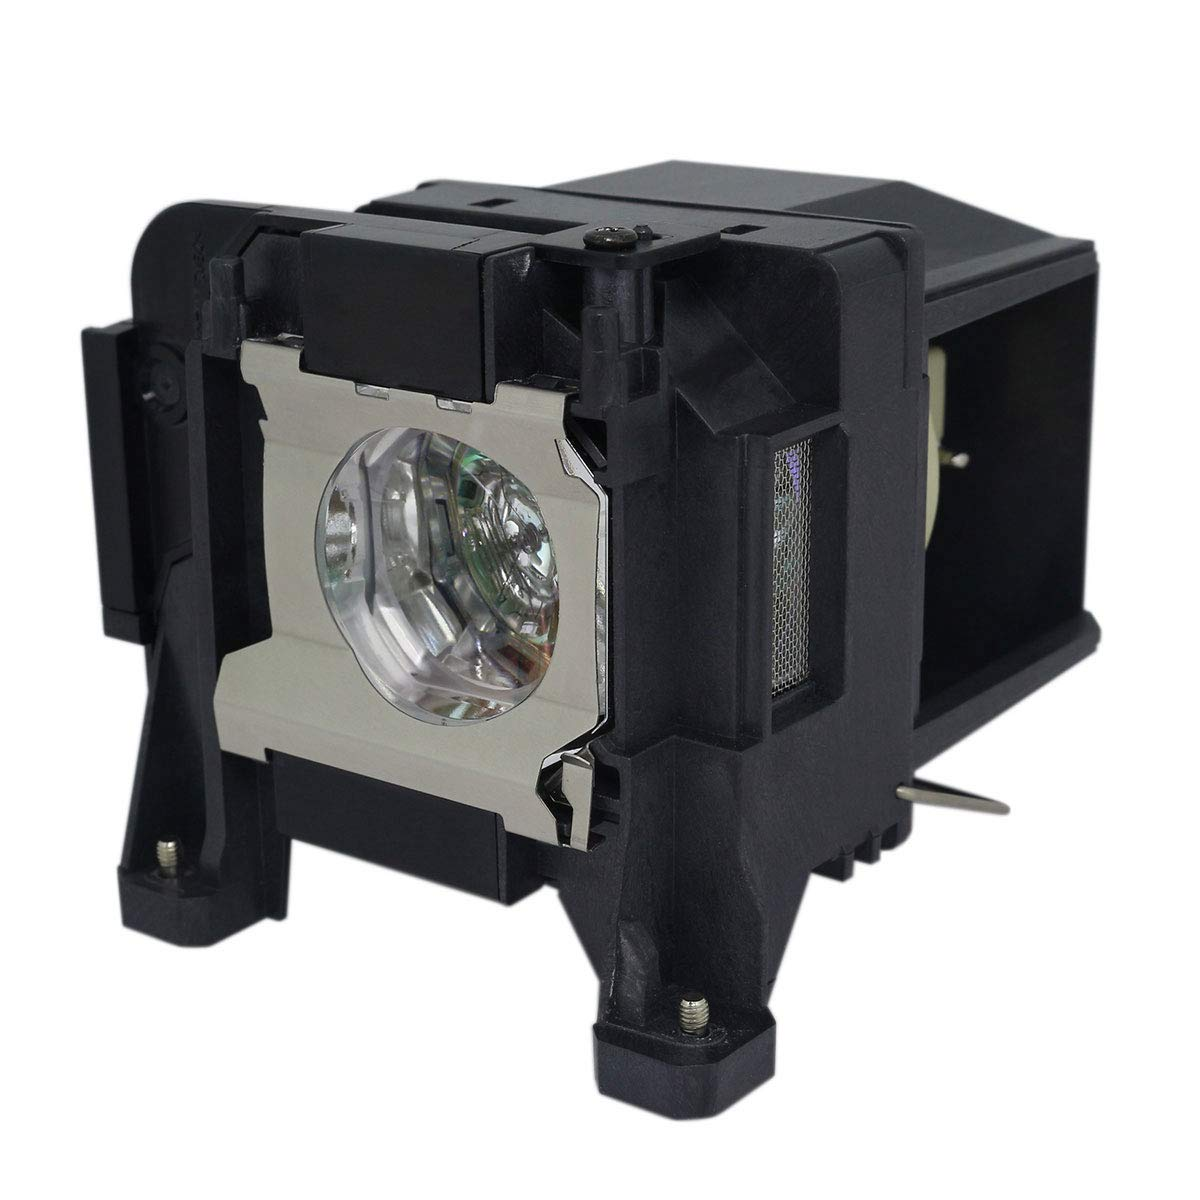 Original Philips Projector Lamp Replacement with Housing for Epson Home Cinema 4000